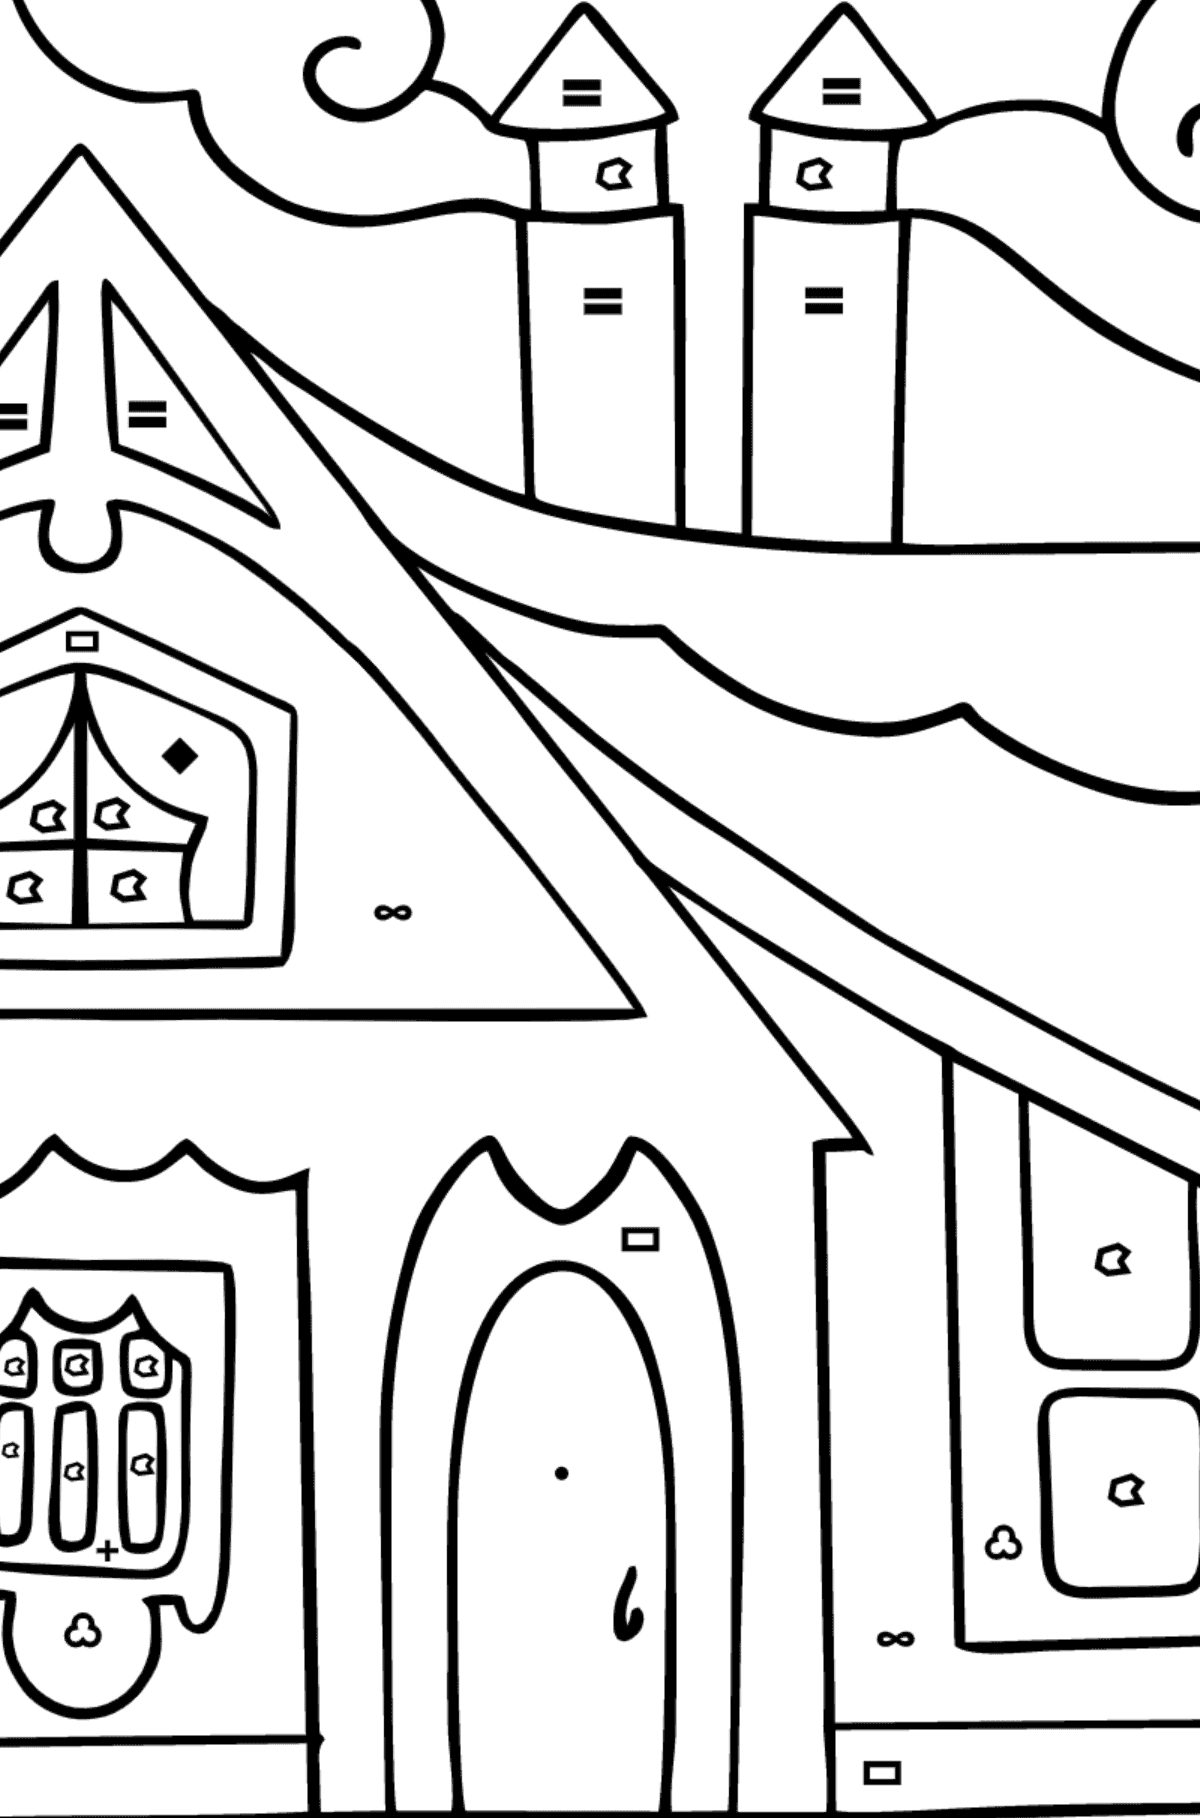 Complex Coloring Page - A Tiny House for Children  - Color by Symbols and Geometric Shapes